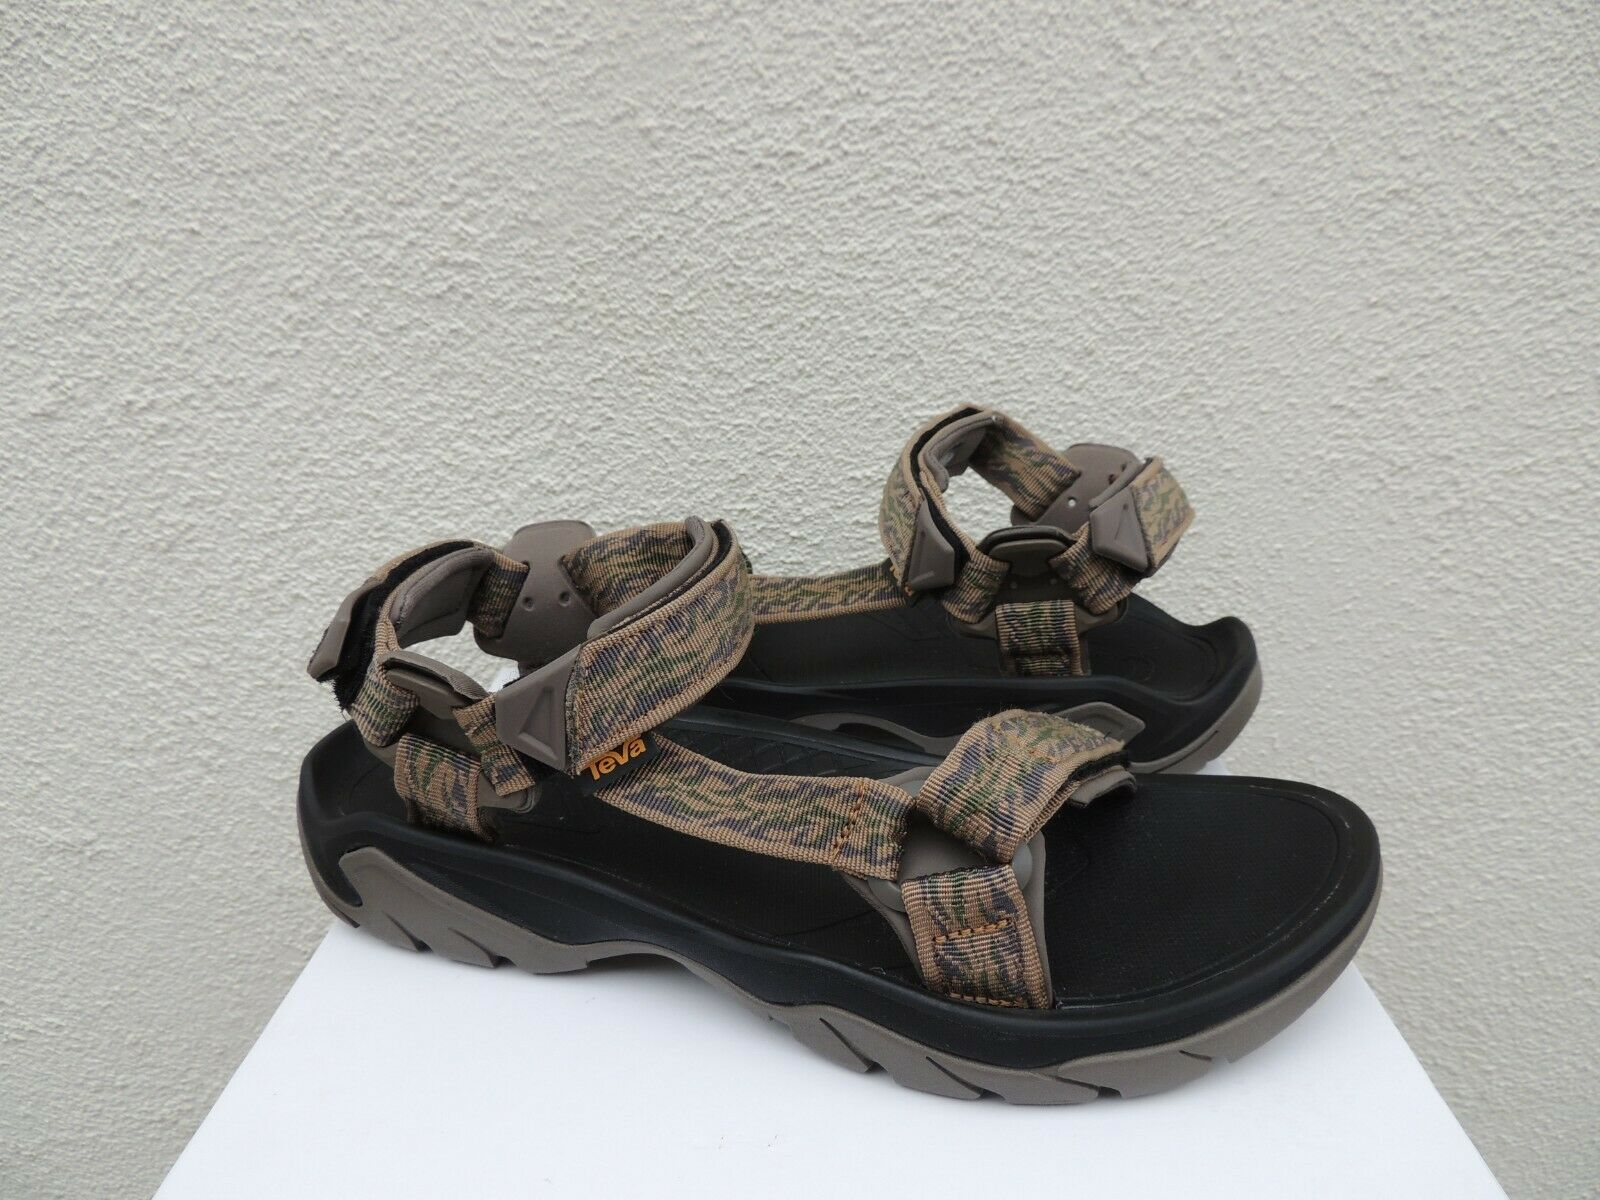 TEVA TERRA FI 5 uomoZANITA PECAN STRAPPY SPORT SeALS, MEN US 12  45.5  DISPLAY